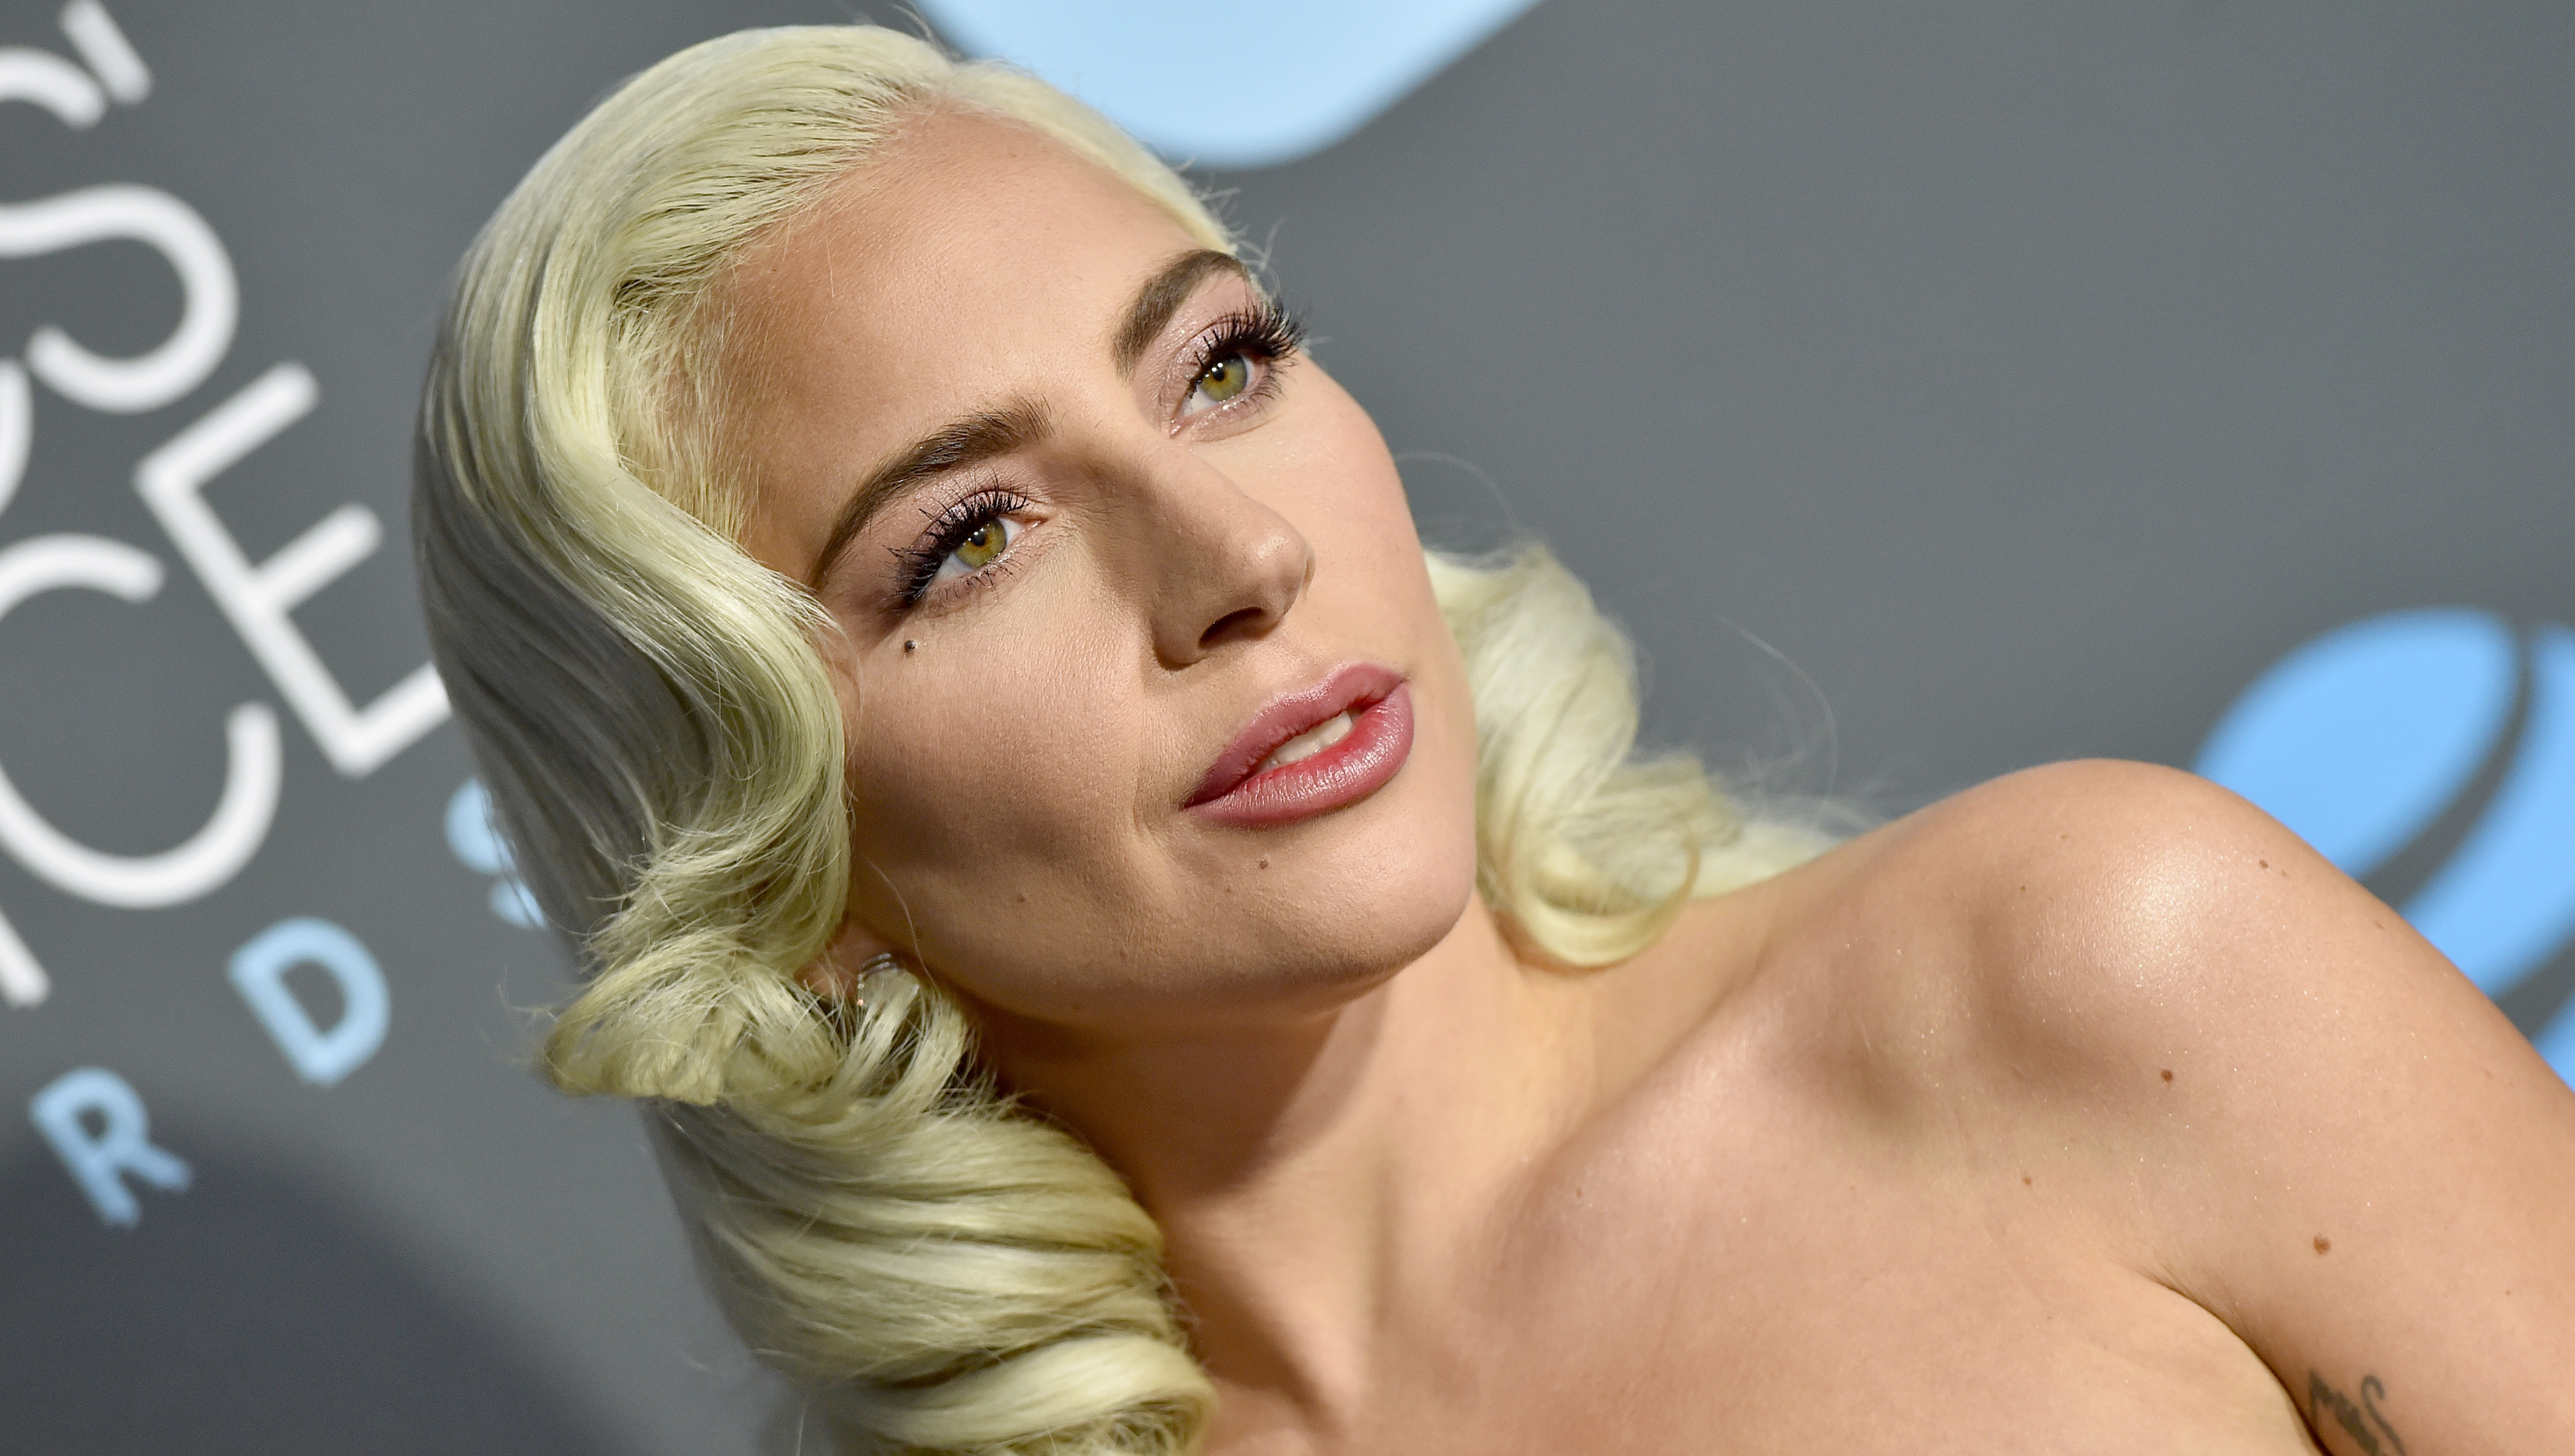 Upclose shot of Lady Gaga with curled blonde hair and a nude pink dress